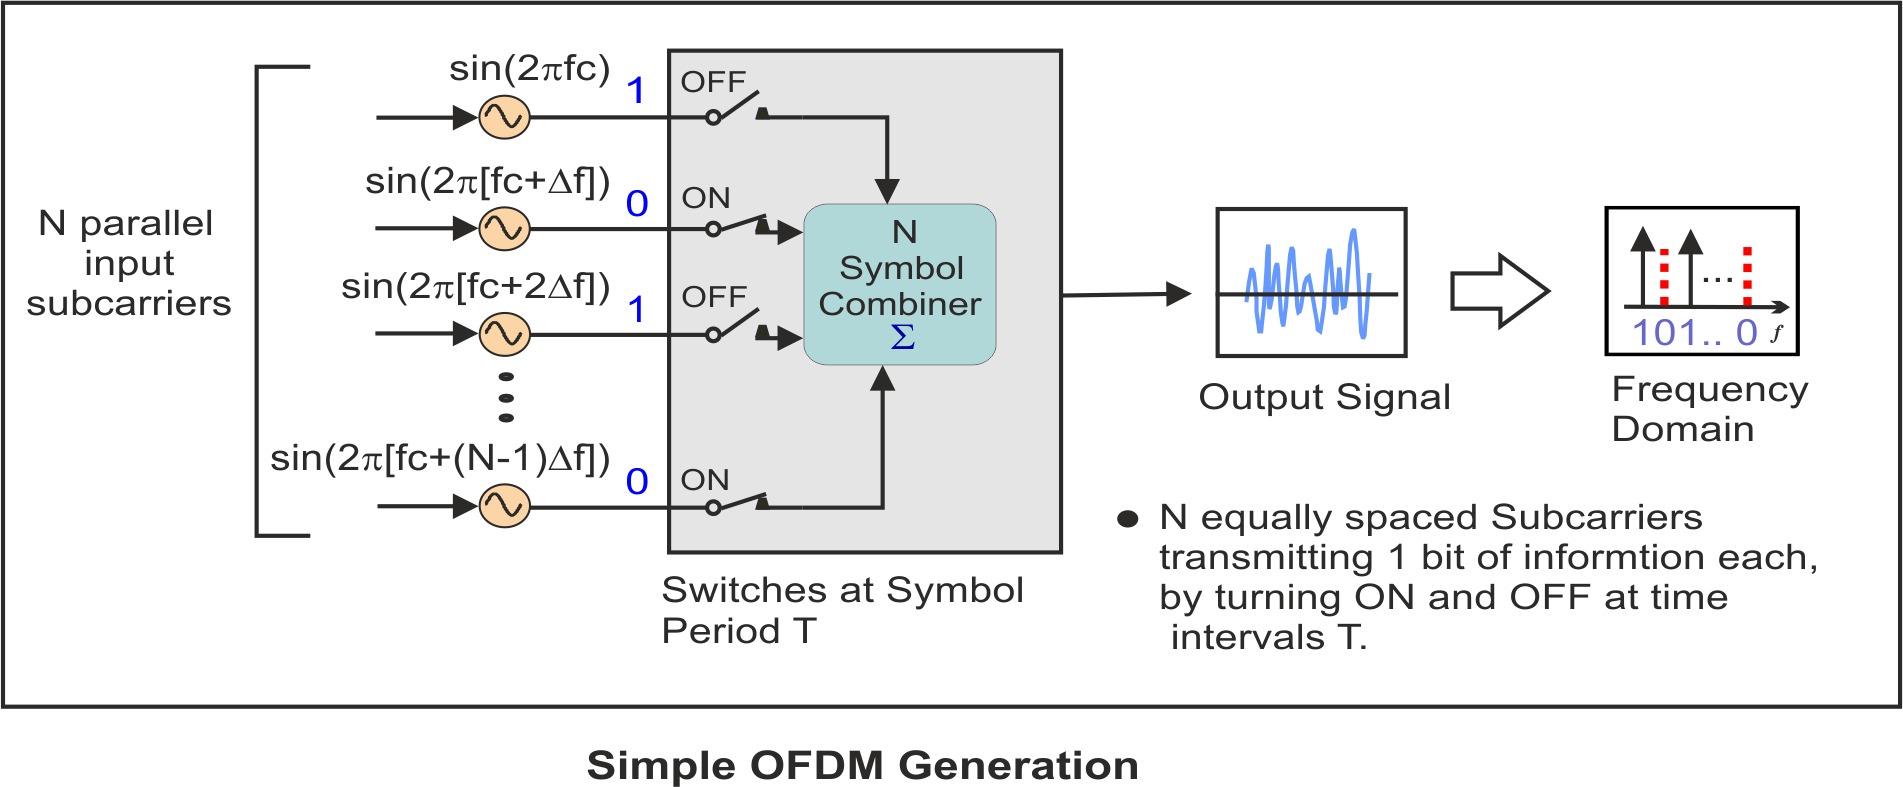 Concepts Of Orthogonal Frequency Division Multiplexing Ofdm And Simple Generator Working Diagram Analog System Implementation